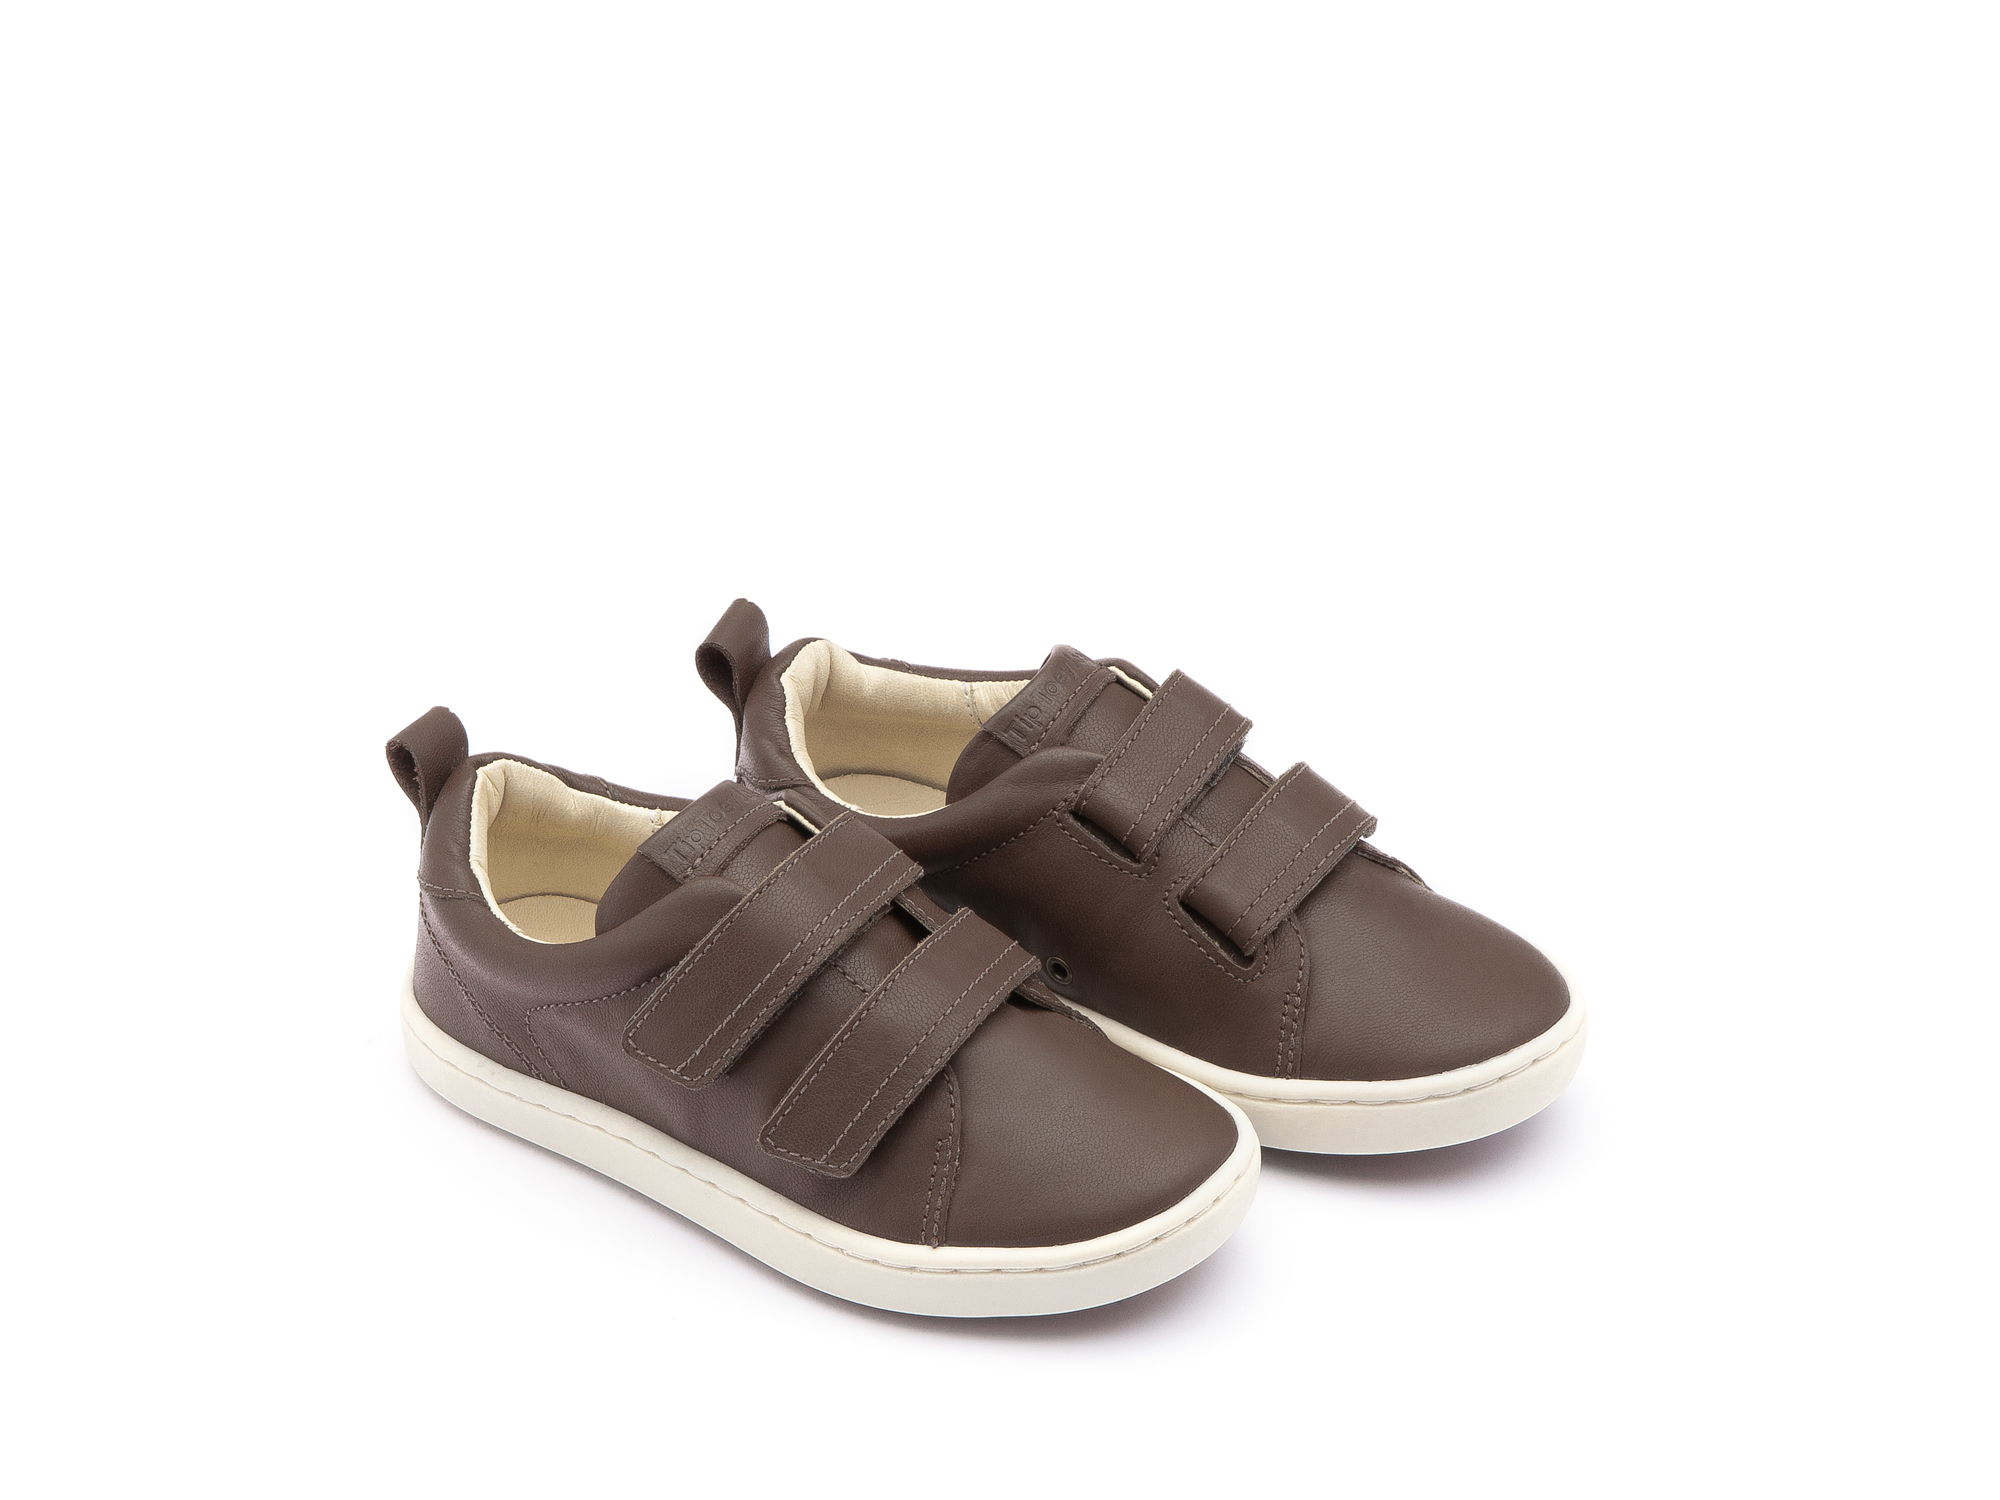 Tênis Little Guide Old Brown  Toddler 2 à 4 anos - 0